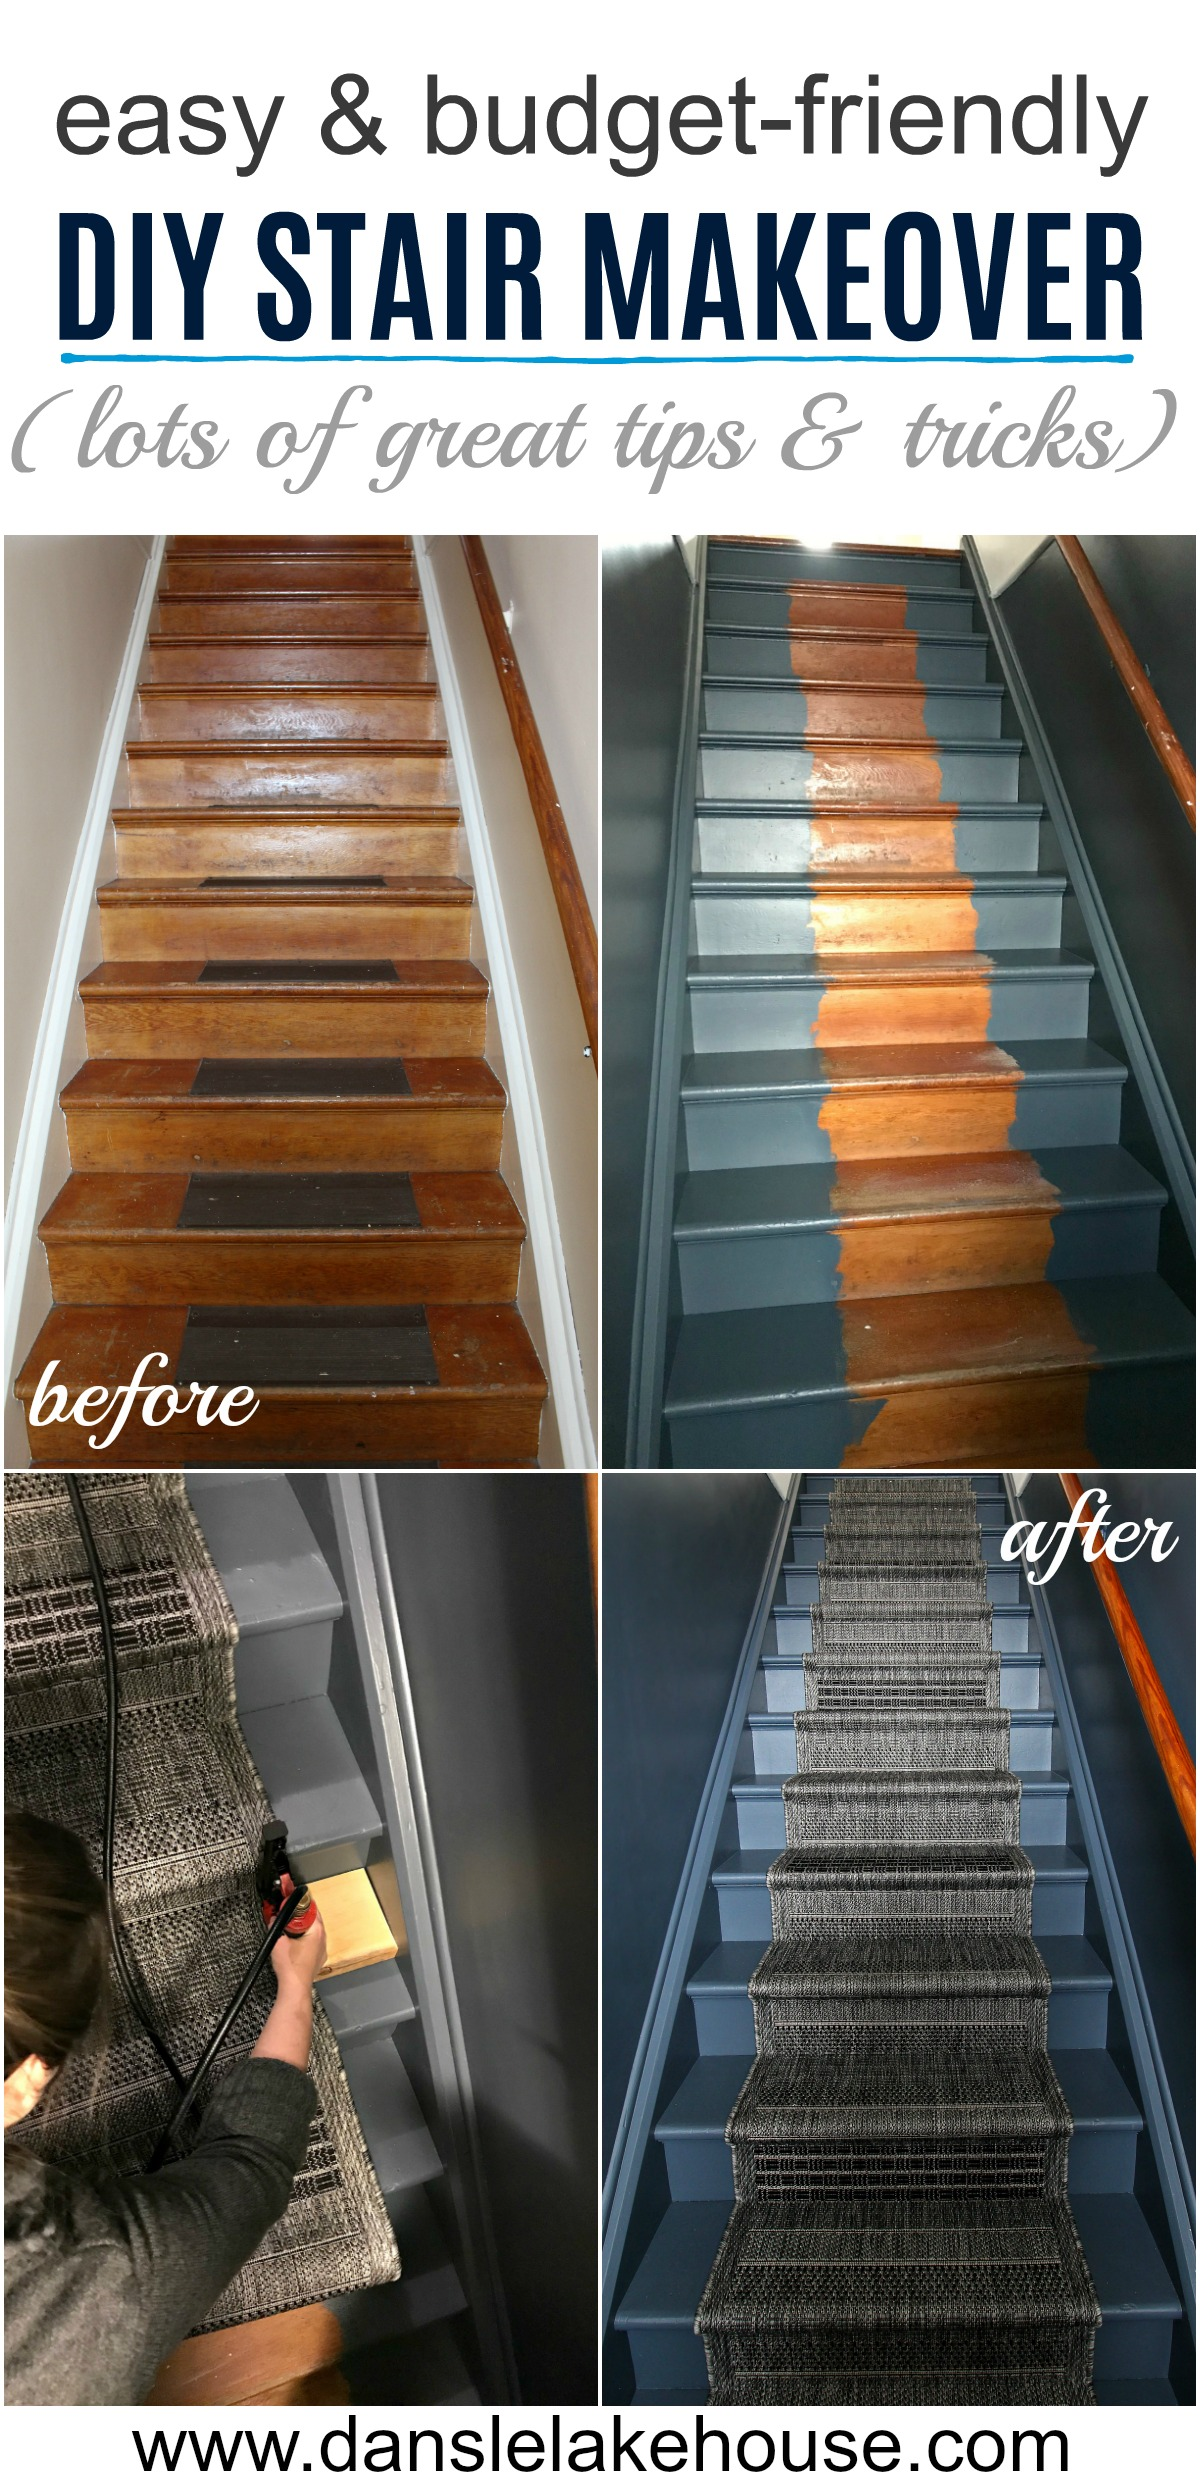 easy and budget-friendly stair makeover with DIY runner tutorial